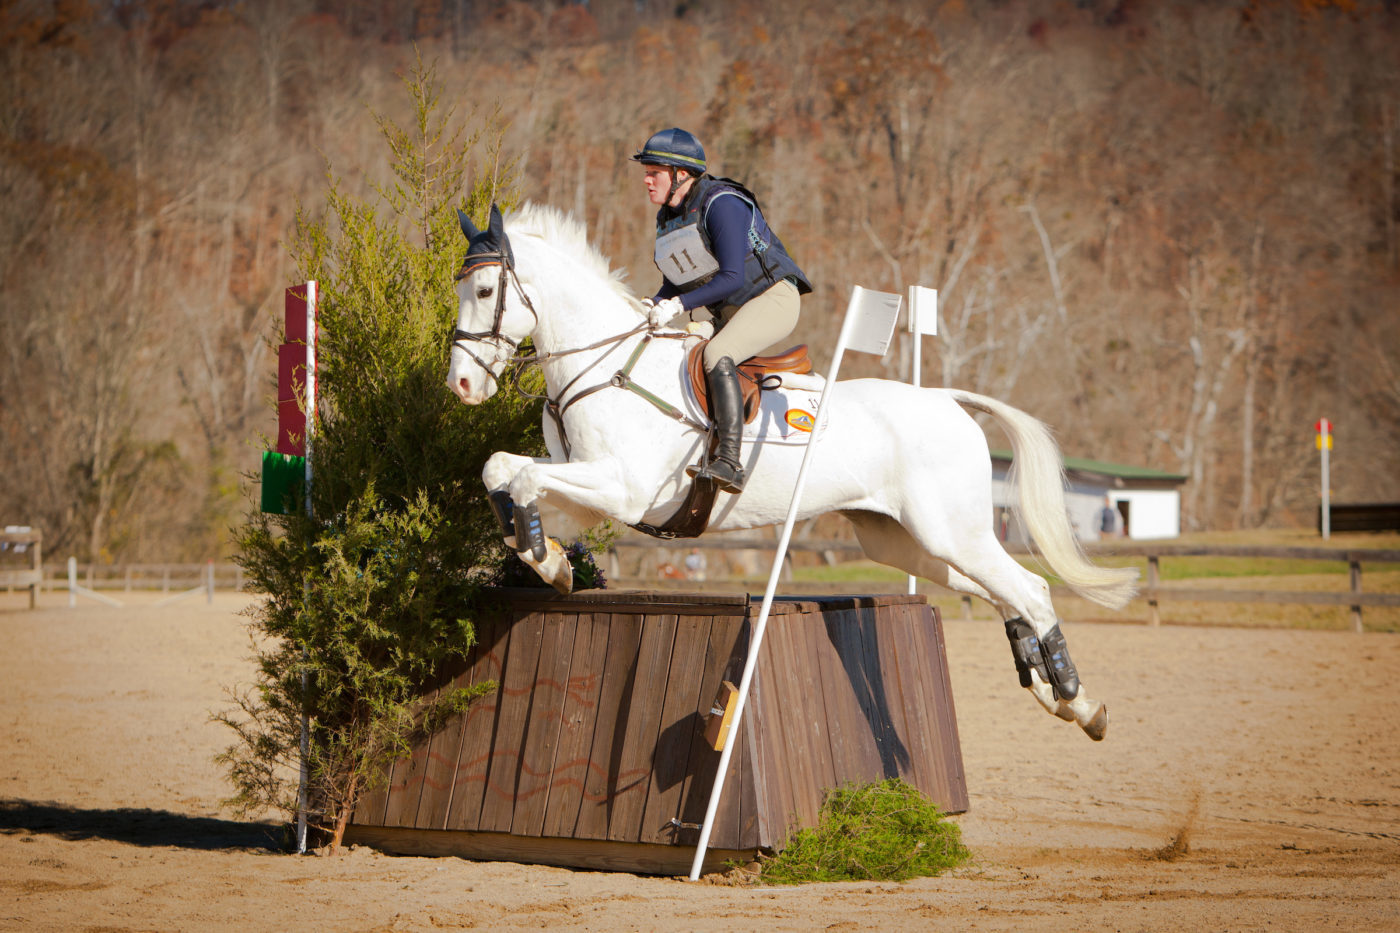 10th - Sharon White and Cooley On Show - 48.6